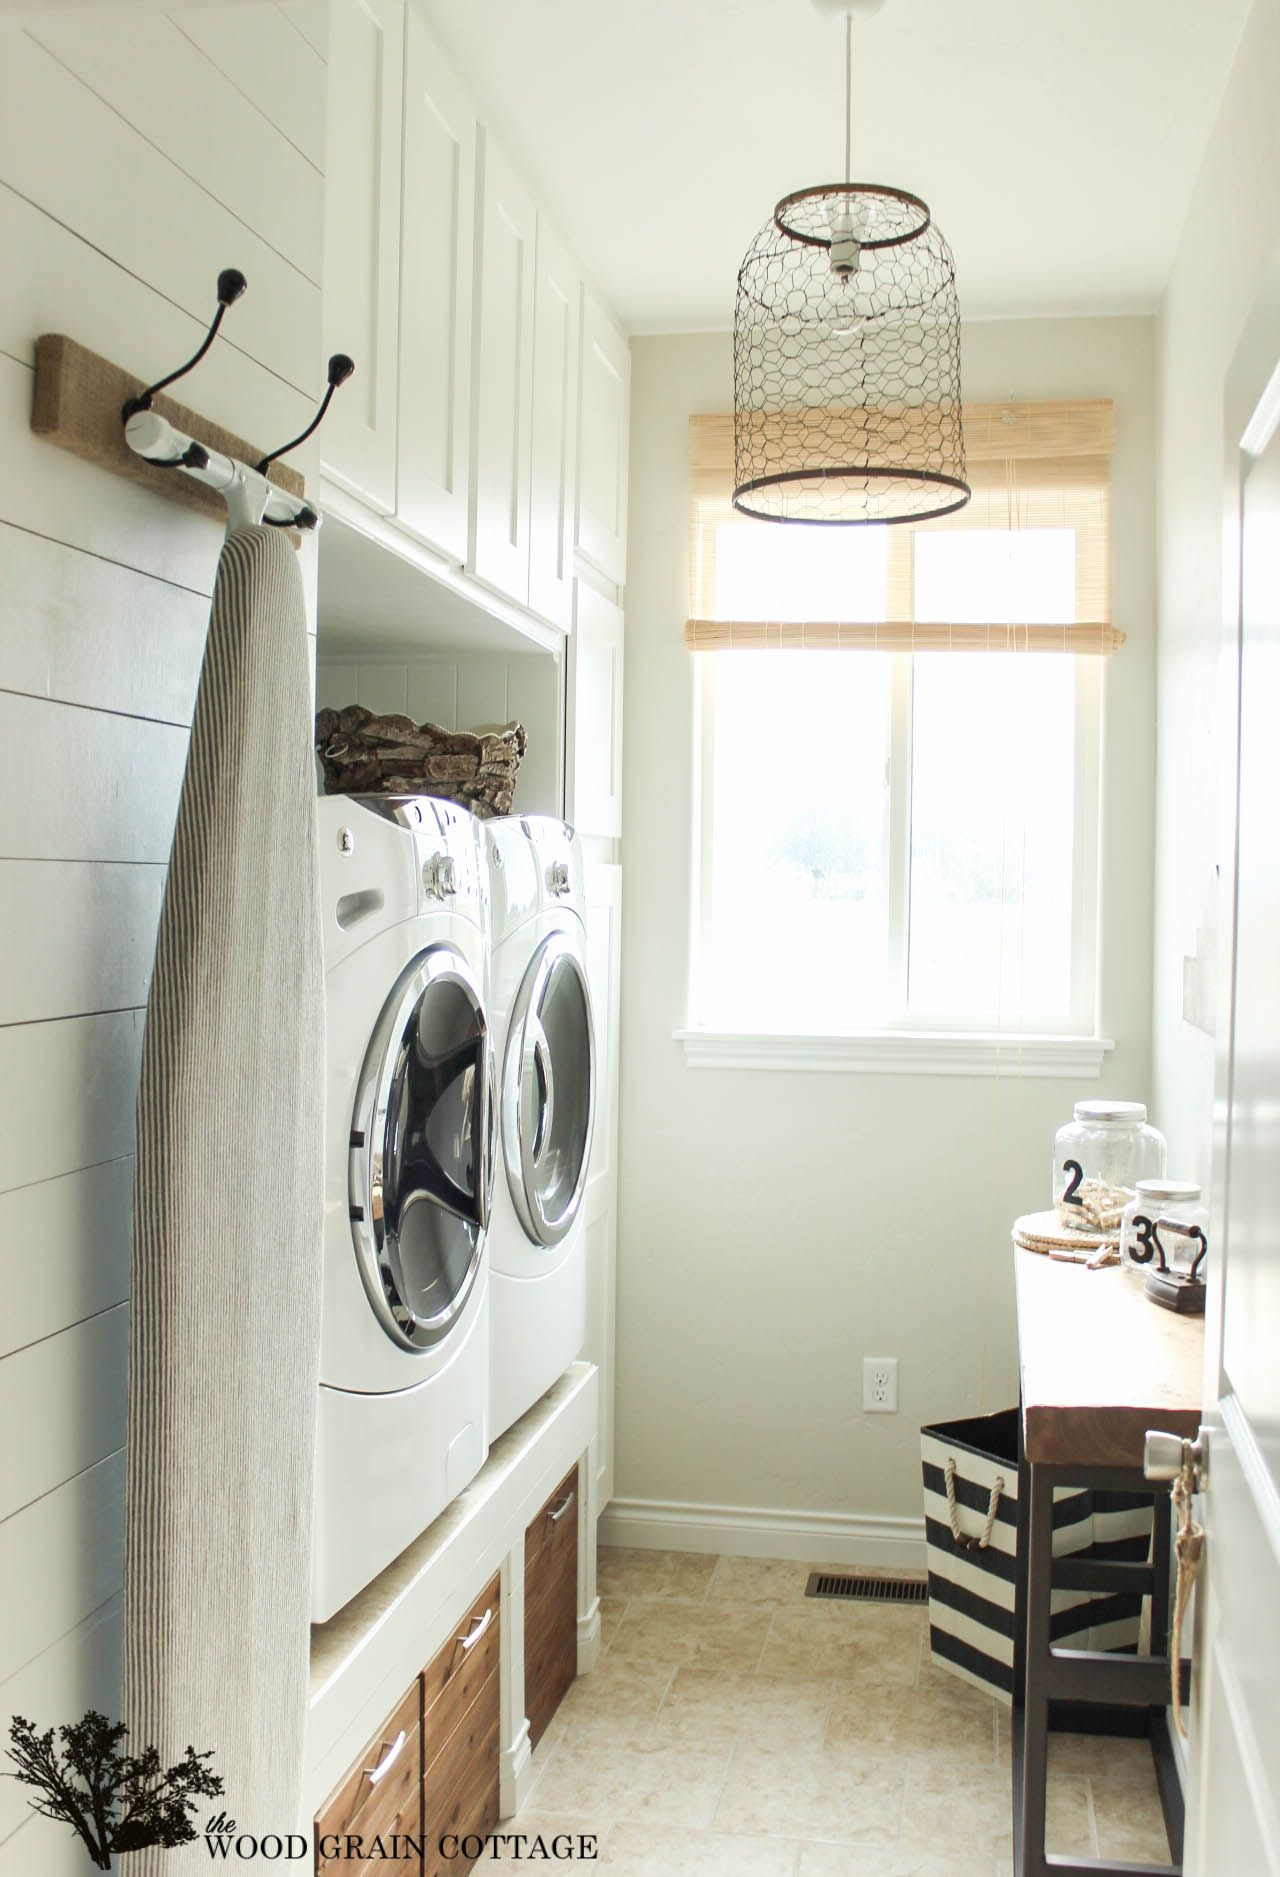 Laundry room lighting · Farmhouse Light with Chicken Wire by The Wood Grain Cottage